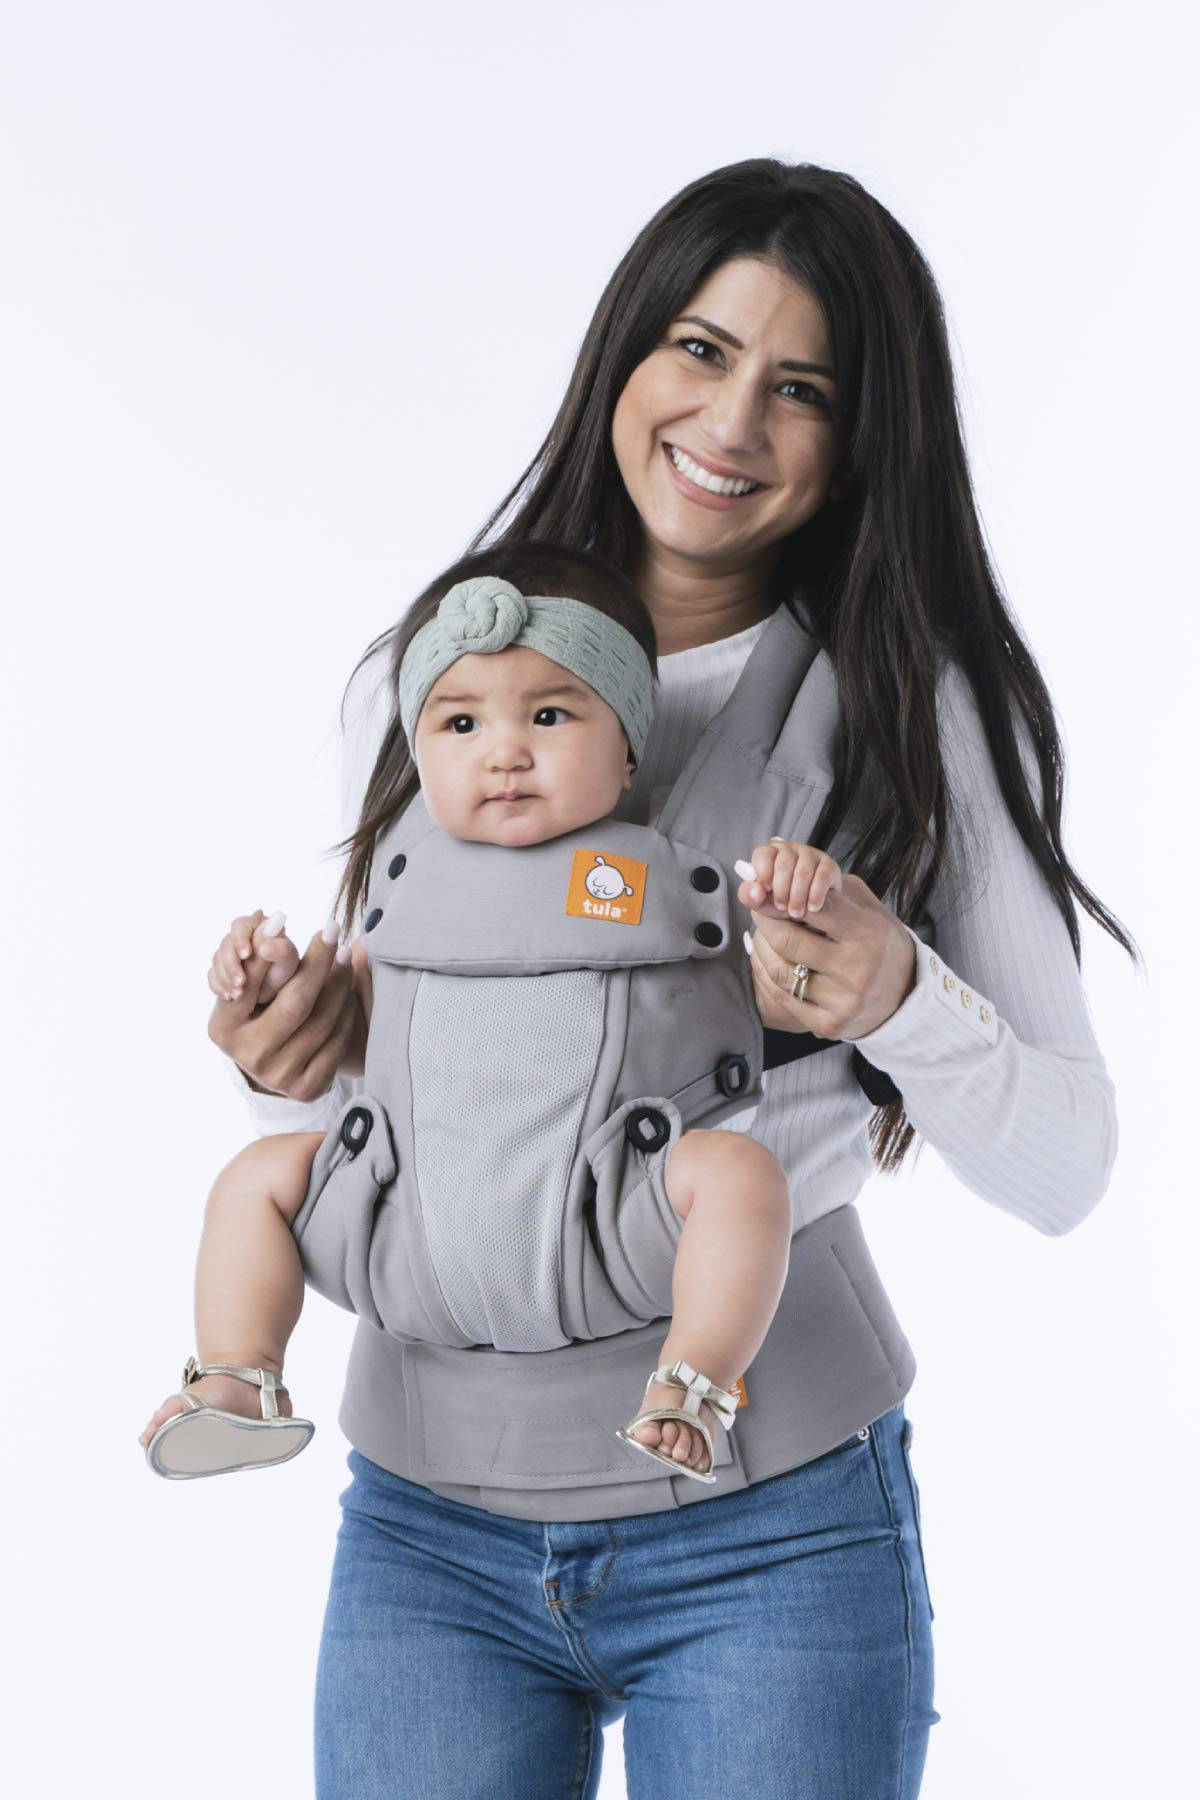 Baby Tula Coast Explore Mesh Baby Carrier 7 - 45 lb, Adjustable Newborn to Toddler Carrier, Multiple Ergonomic Positions Front and Back, Breathable - Coast Overcast, Light Gray with Light Gray Mesh Tula STAY COOL MESH CARRIER PANEL: Large mesh panel provides extra ventilation for optimal breathability to keep wearer and baby cool. BREATHABLE & LIGHTWEIGHT MATERIAL: Soft and lightweight 100% cotton with a large breathable mesh panel and hood that's easy to clean and machine washable. EVERY CARRY POSITION YOUR BABY WILL NEED, INCLUDING FACING OUT: Multiple positions to carry baby including front facing out*, facing in, and back carry. Each position provides a natural, ergonomic position best for comfortable carrying that promotes healthy hip and spine development for baby. 3